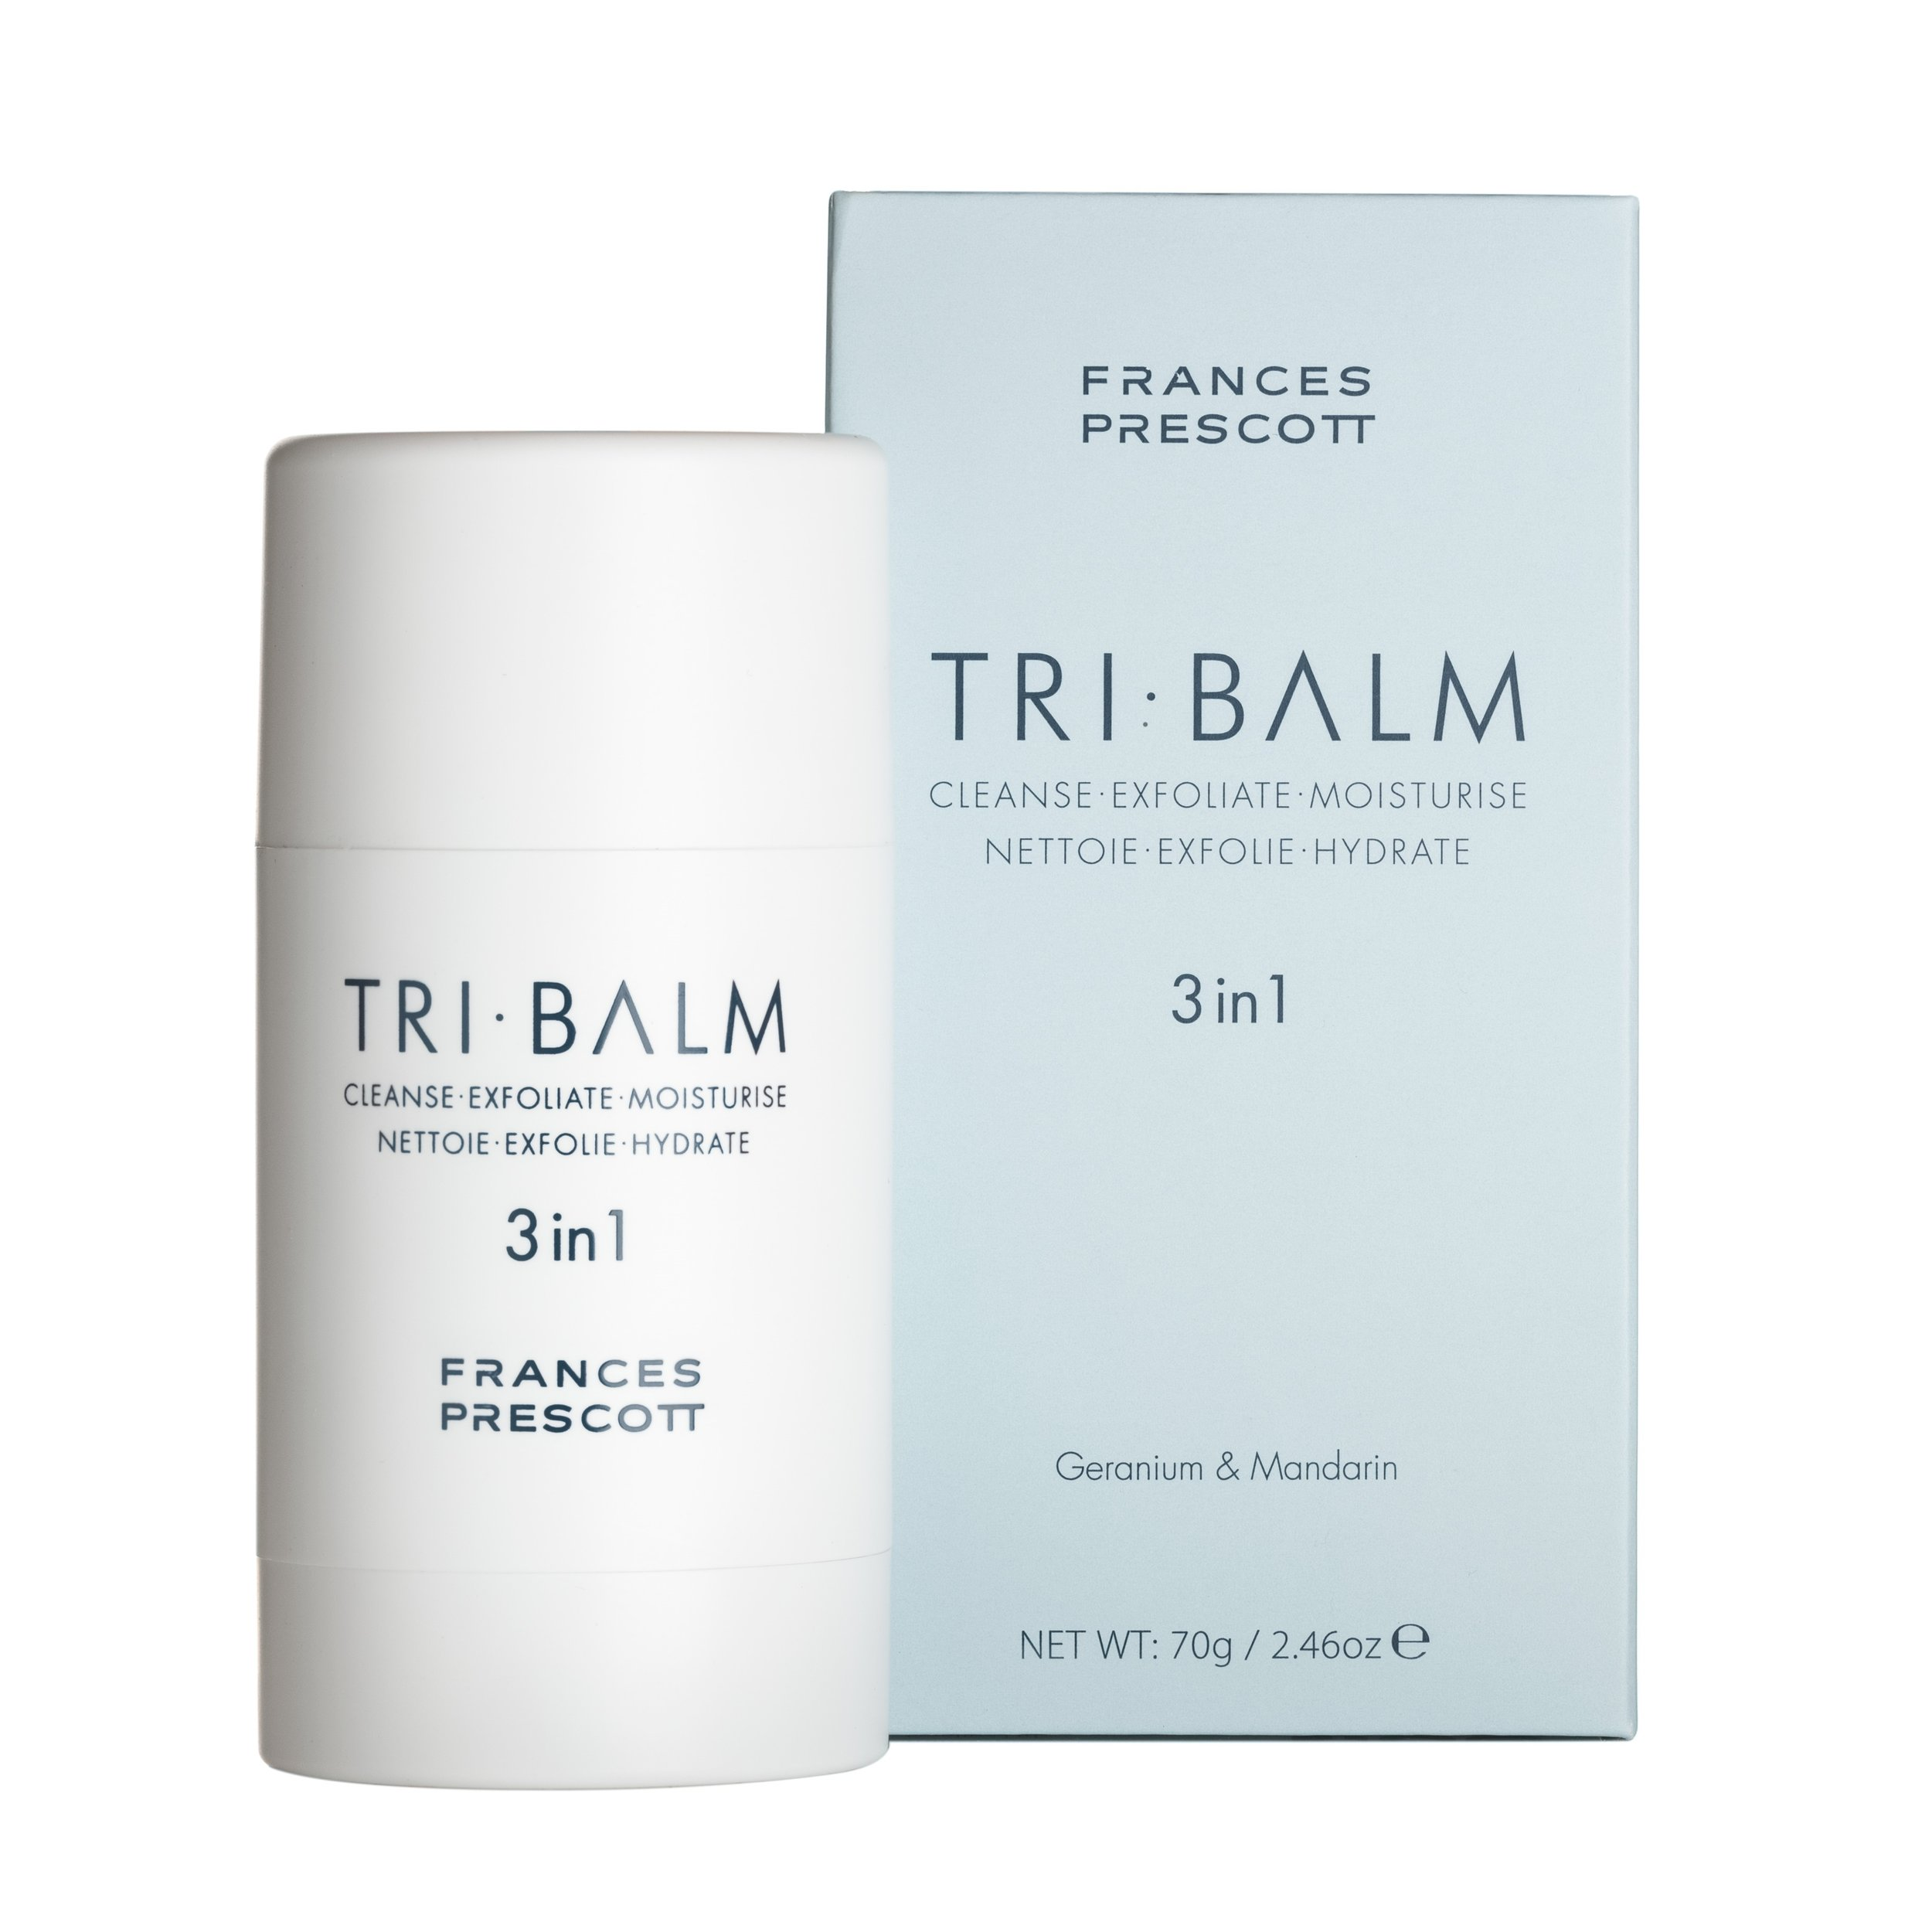 (new) TRI-BALM with box 1.jpg